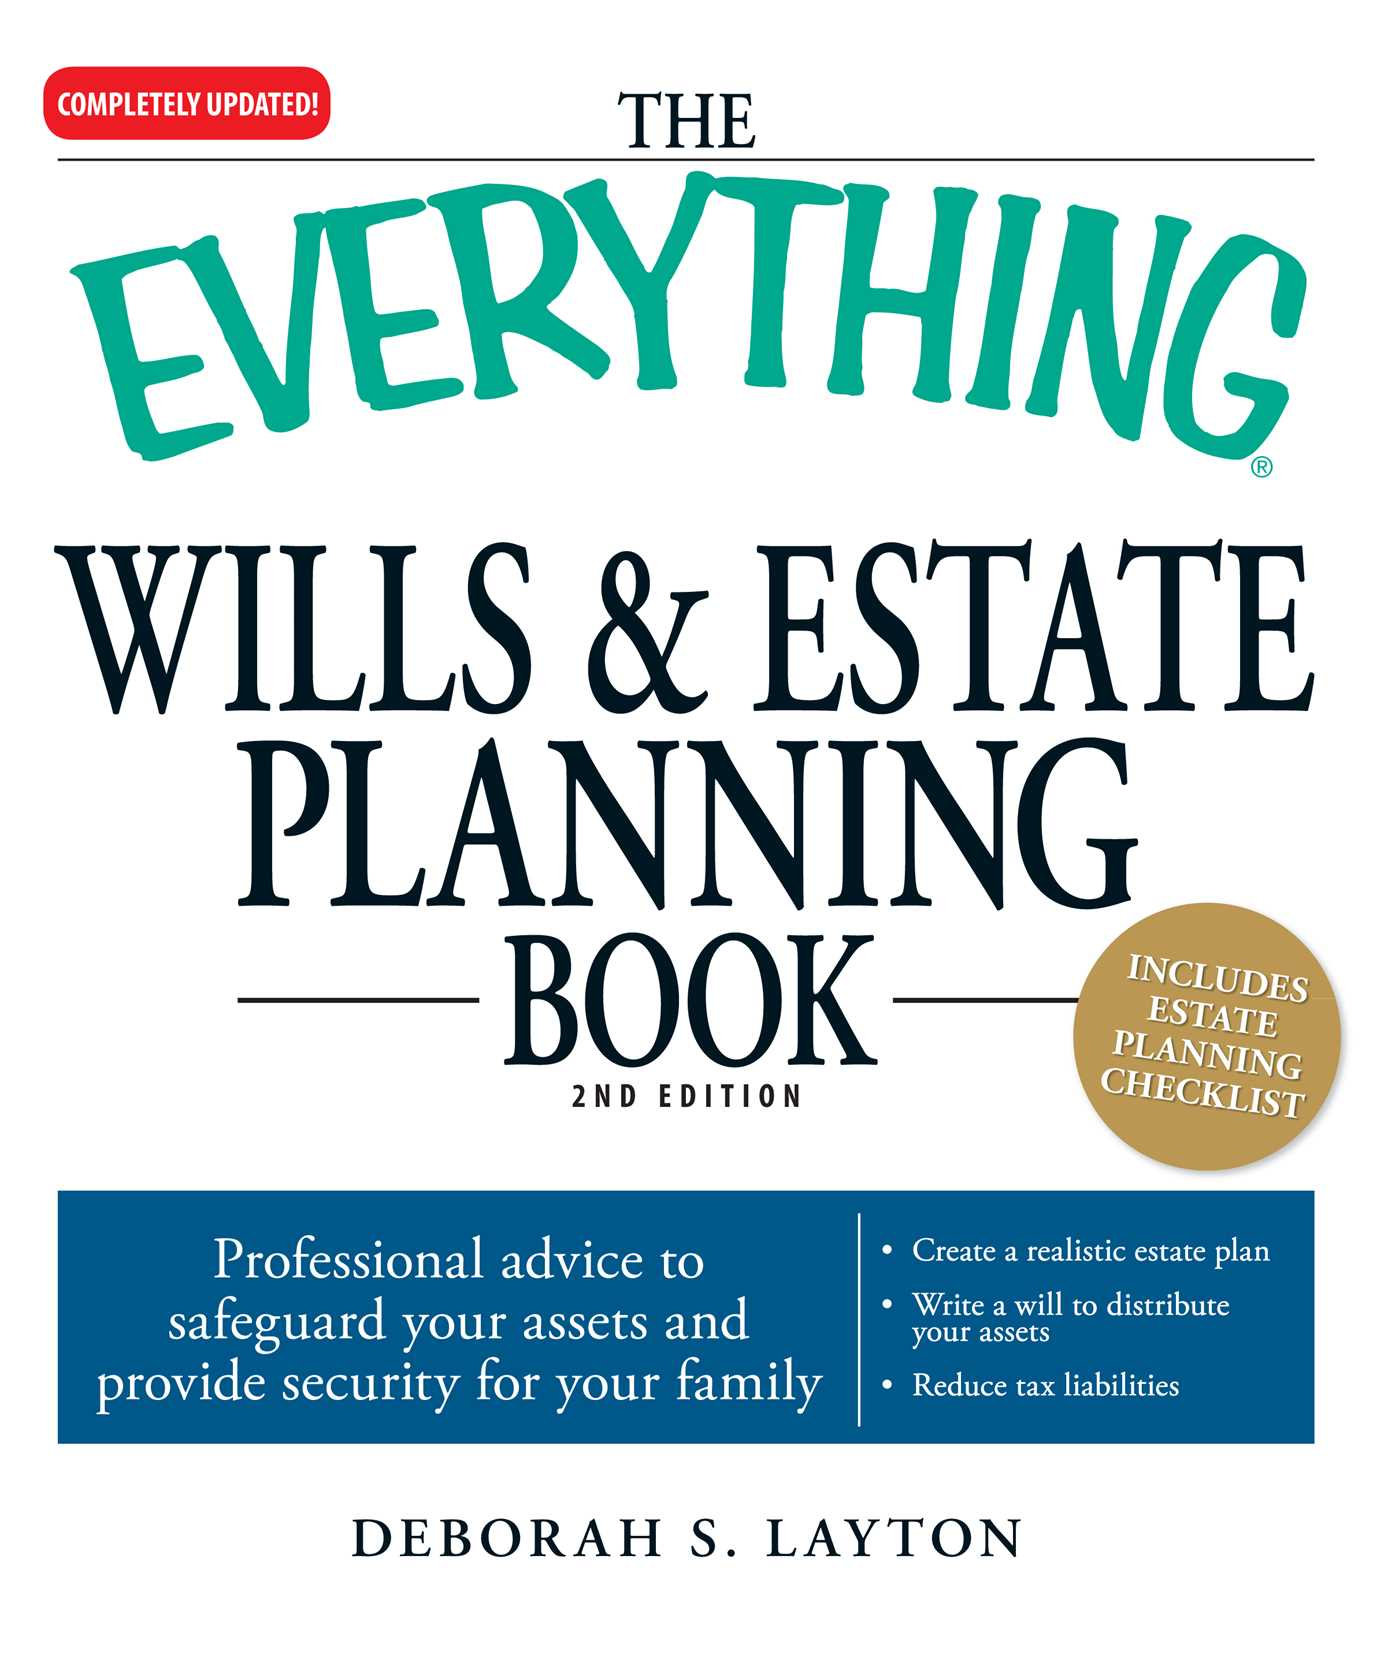 Estate planning to die for ebook array the everything wills u0026 estate planning book ebook by deborah s rh simonandschuster com fandeluxe Images